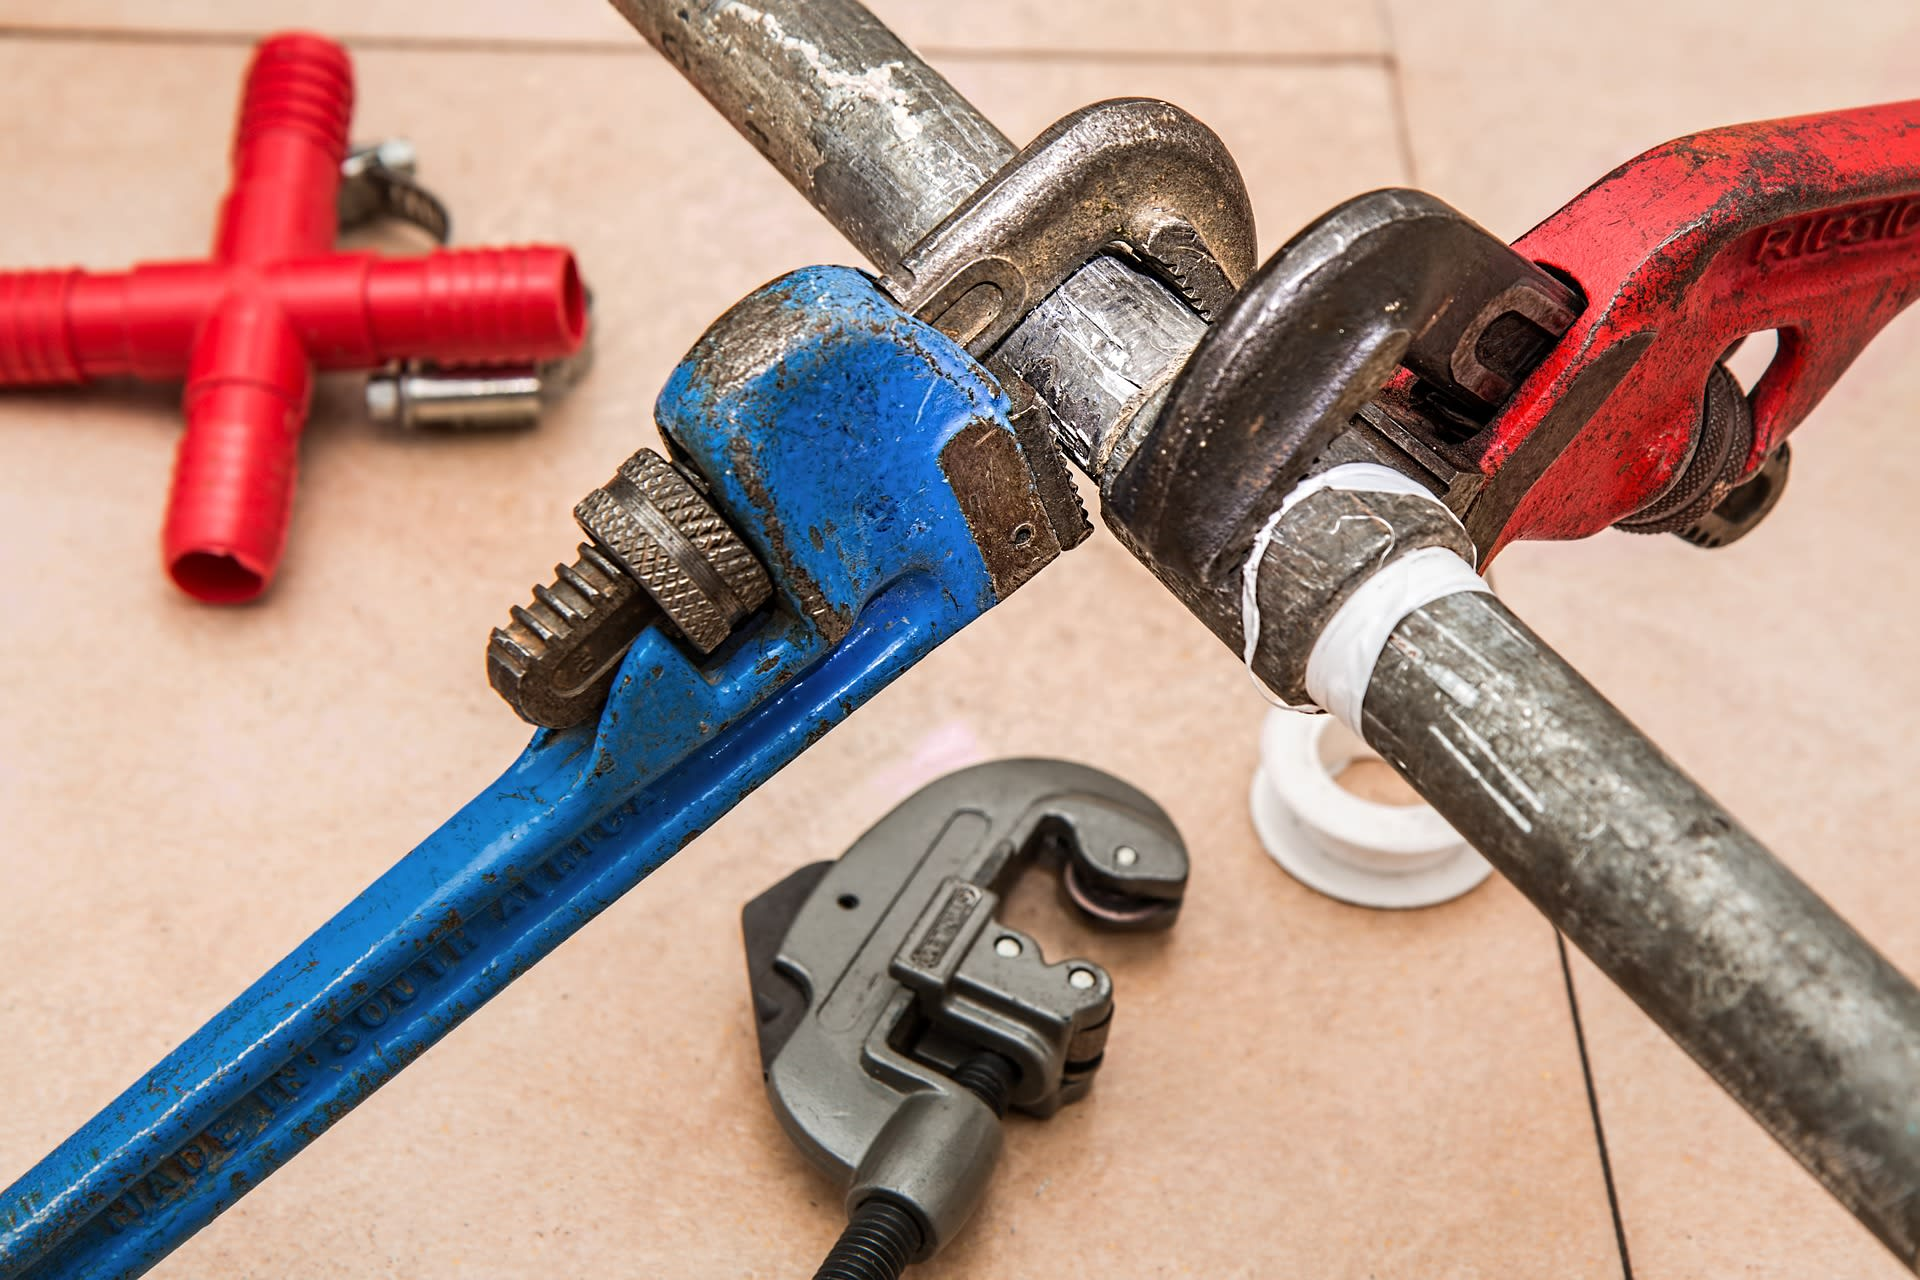 Renovating your home? Self storage can make it far less inconvenient